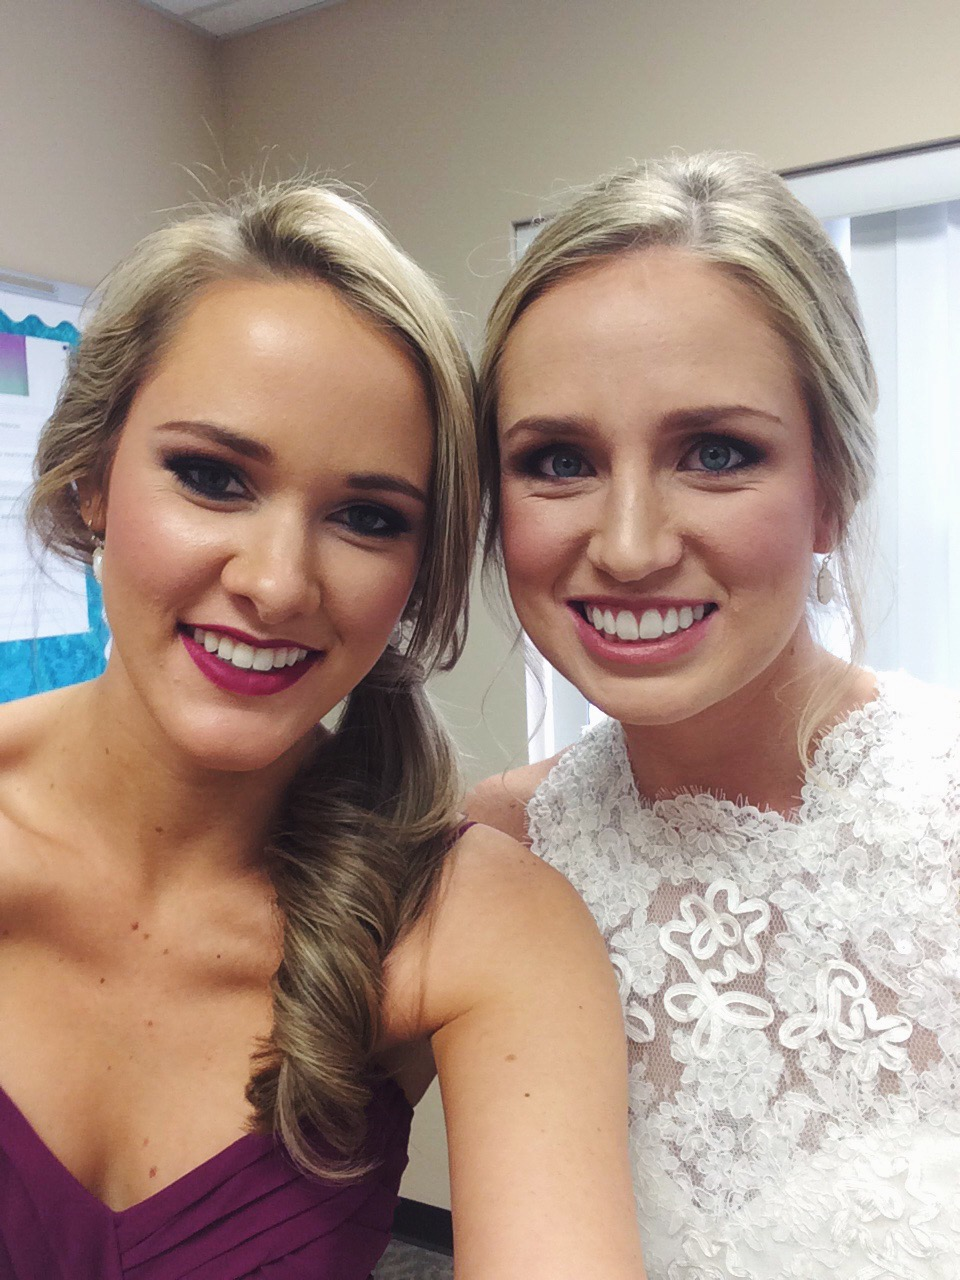 Selfie with the Bride